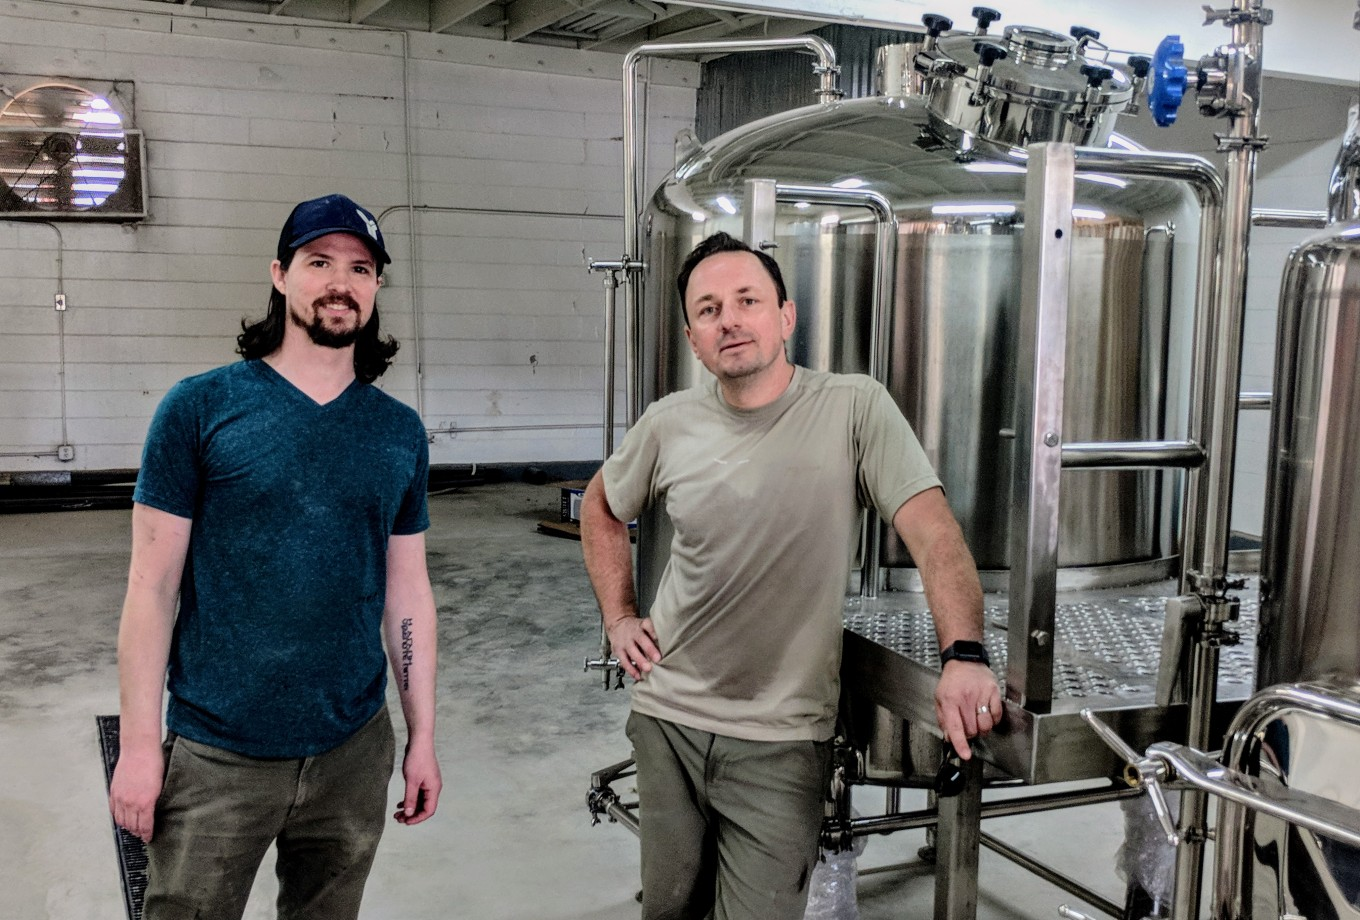 david and jarek interview threshold brewing and blending portland oregon